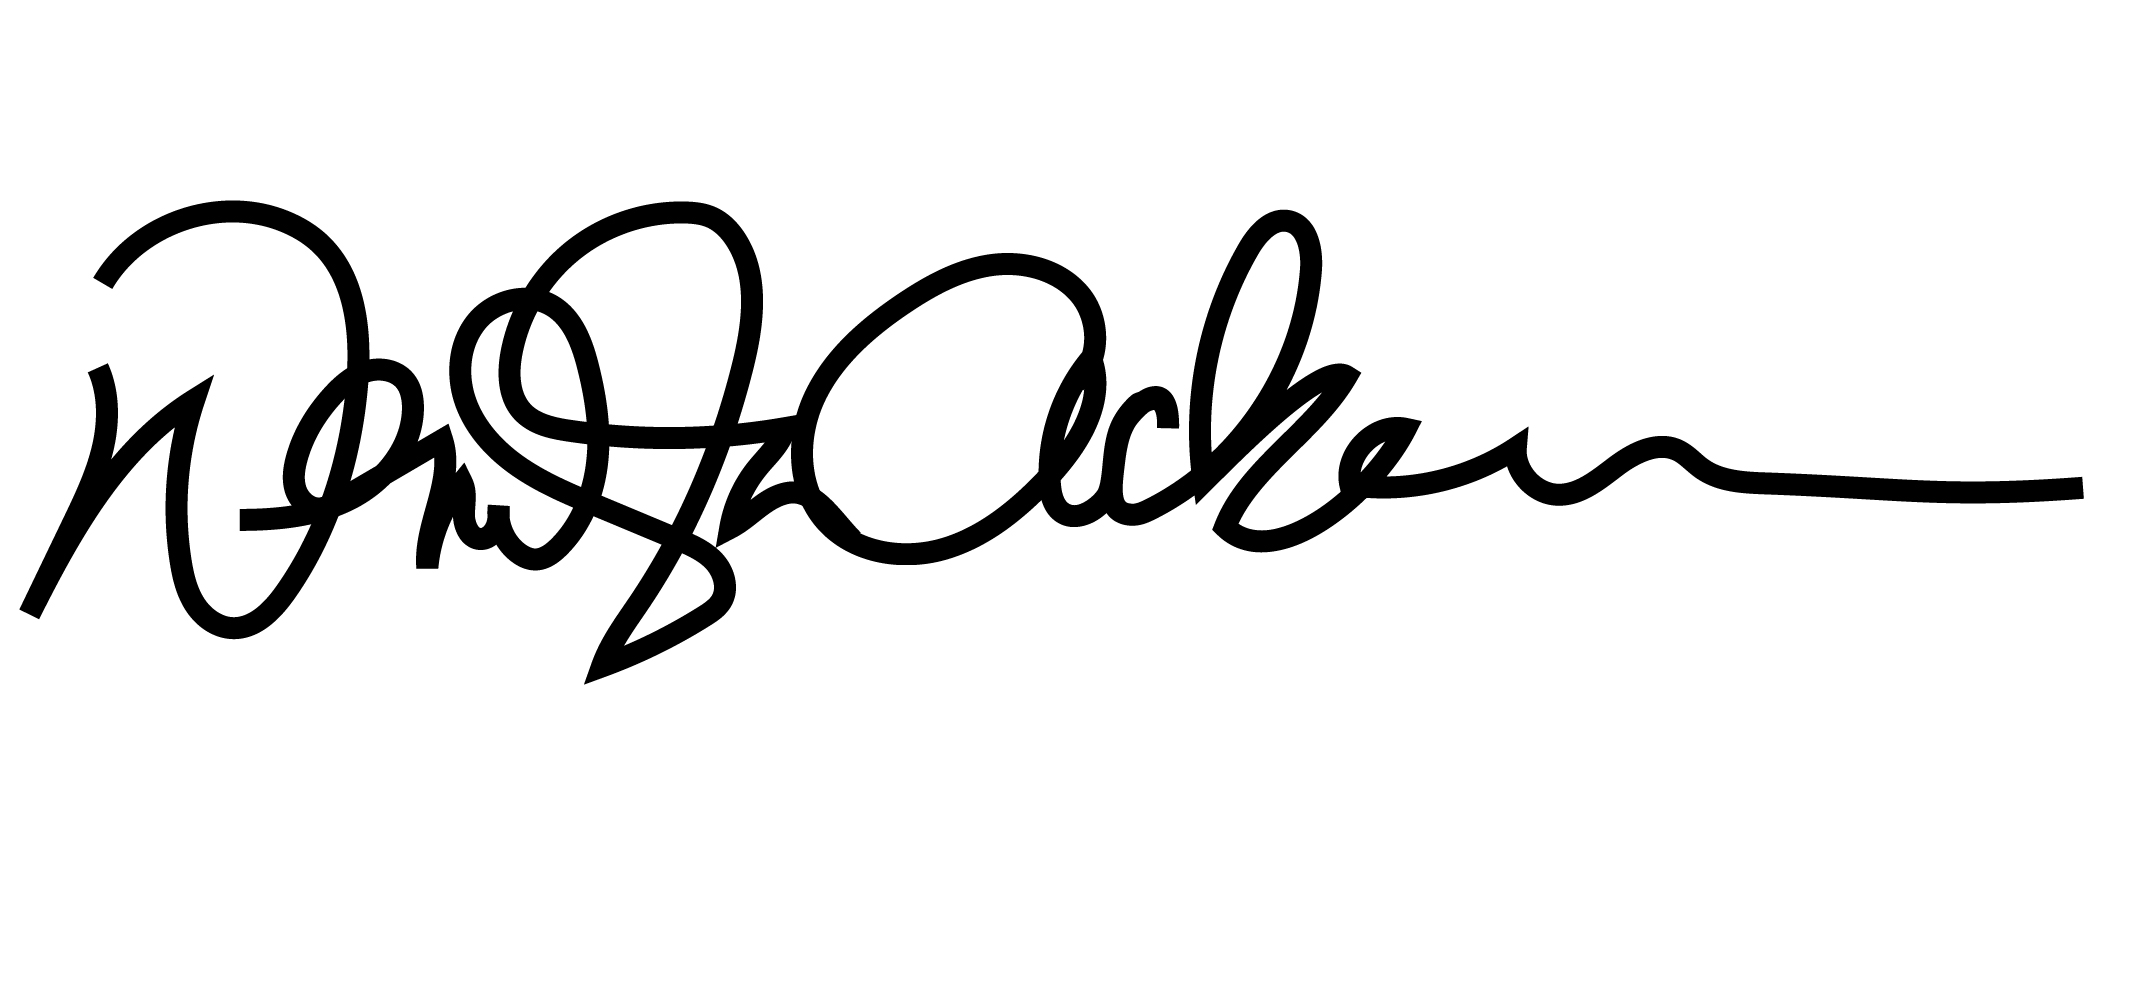 Wendy Ackerman Signature